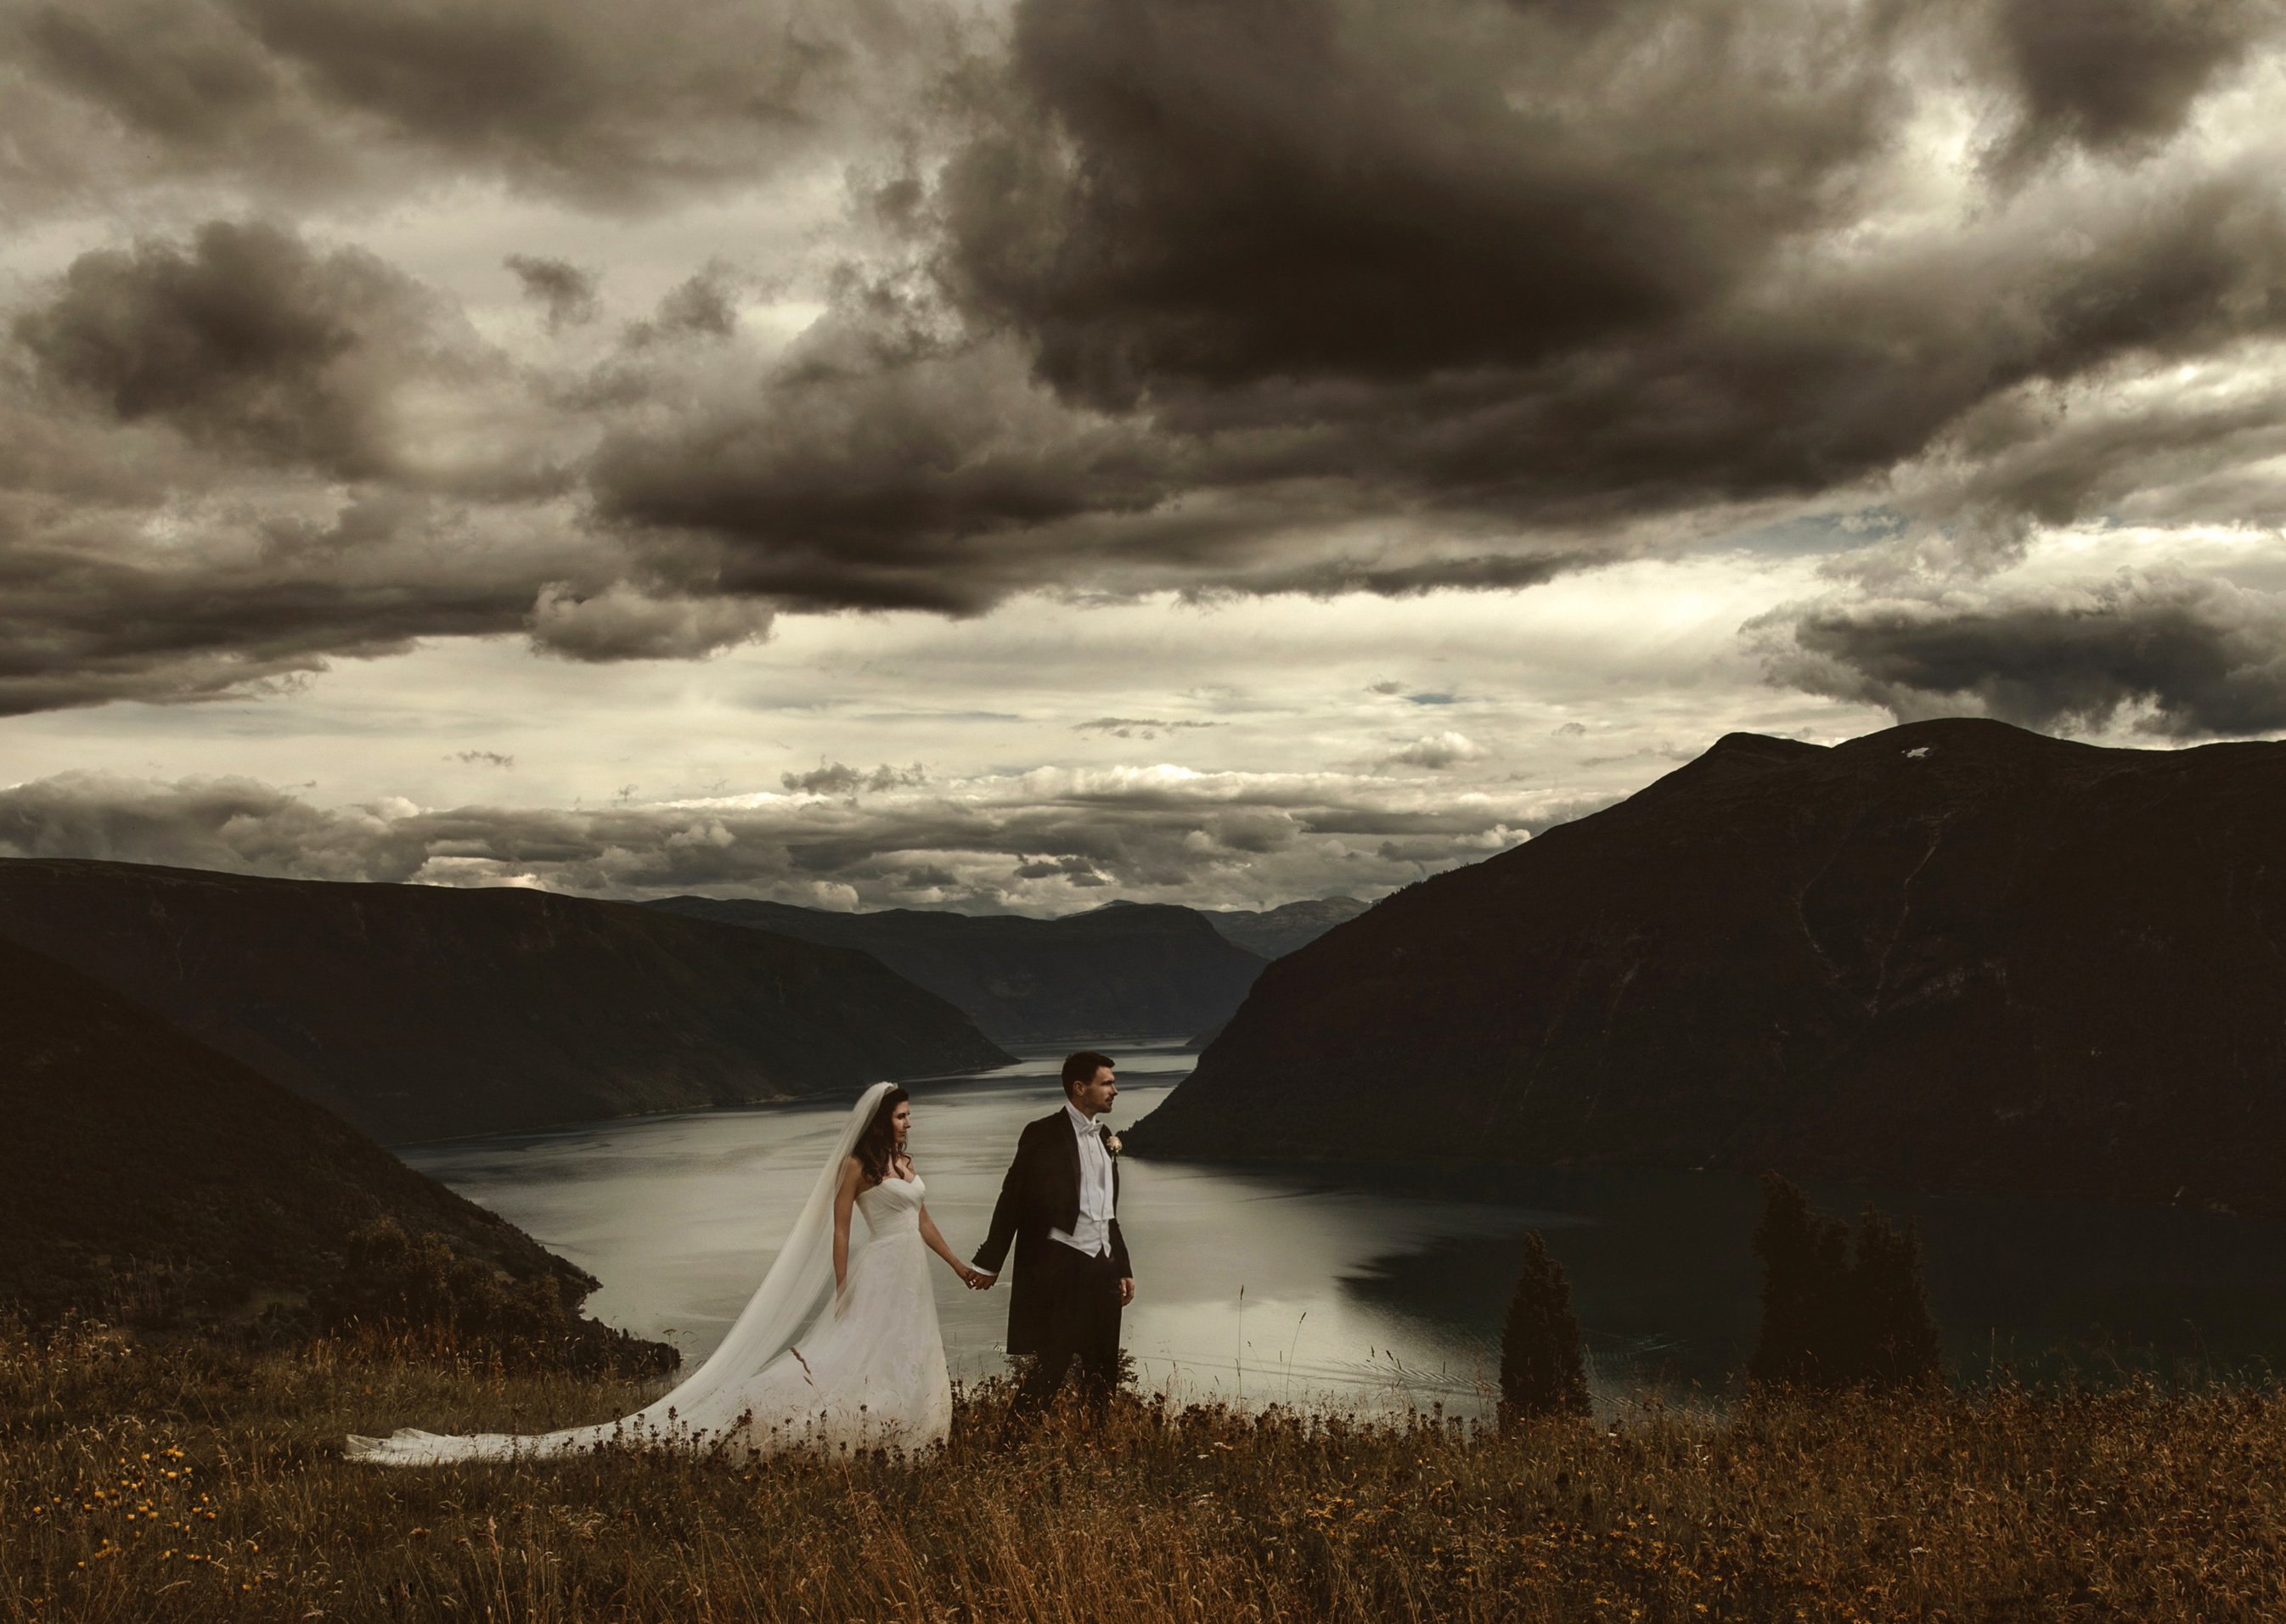 Hand in hand couple against stormy mountain skies - photo by Frøydis